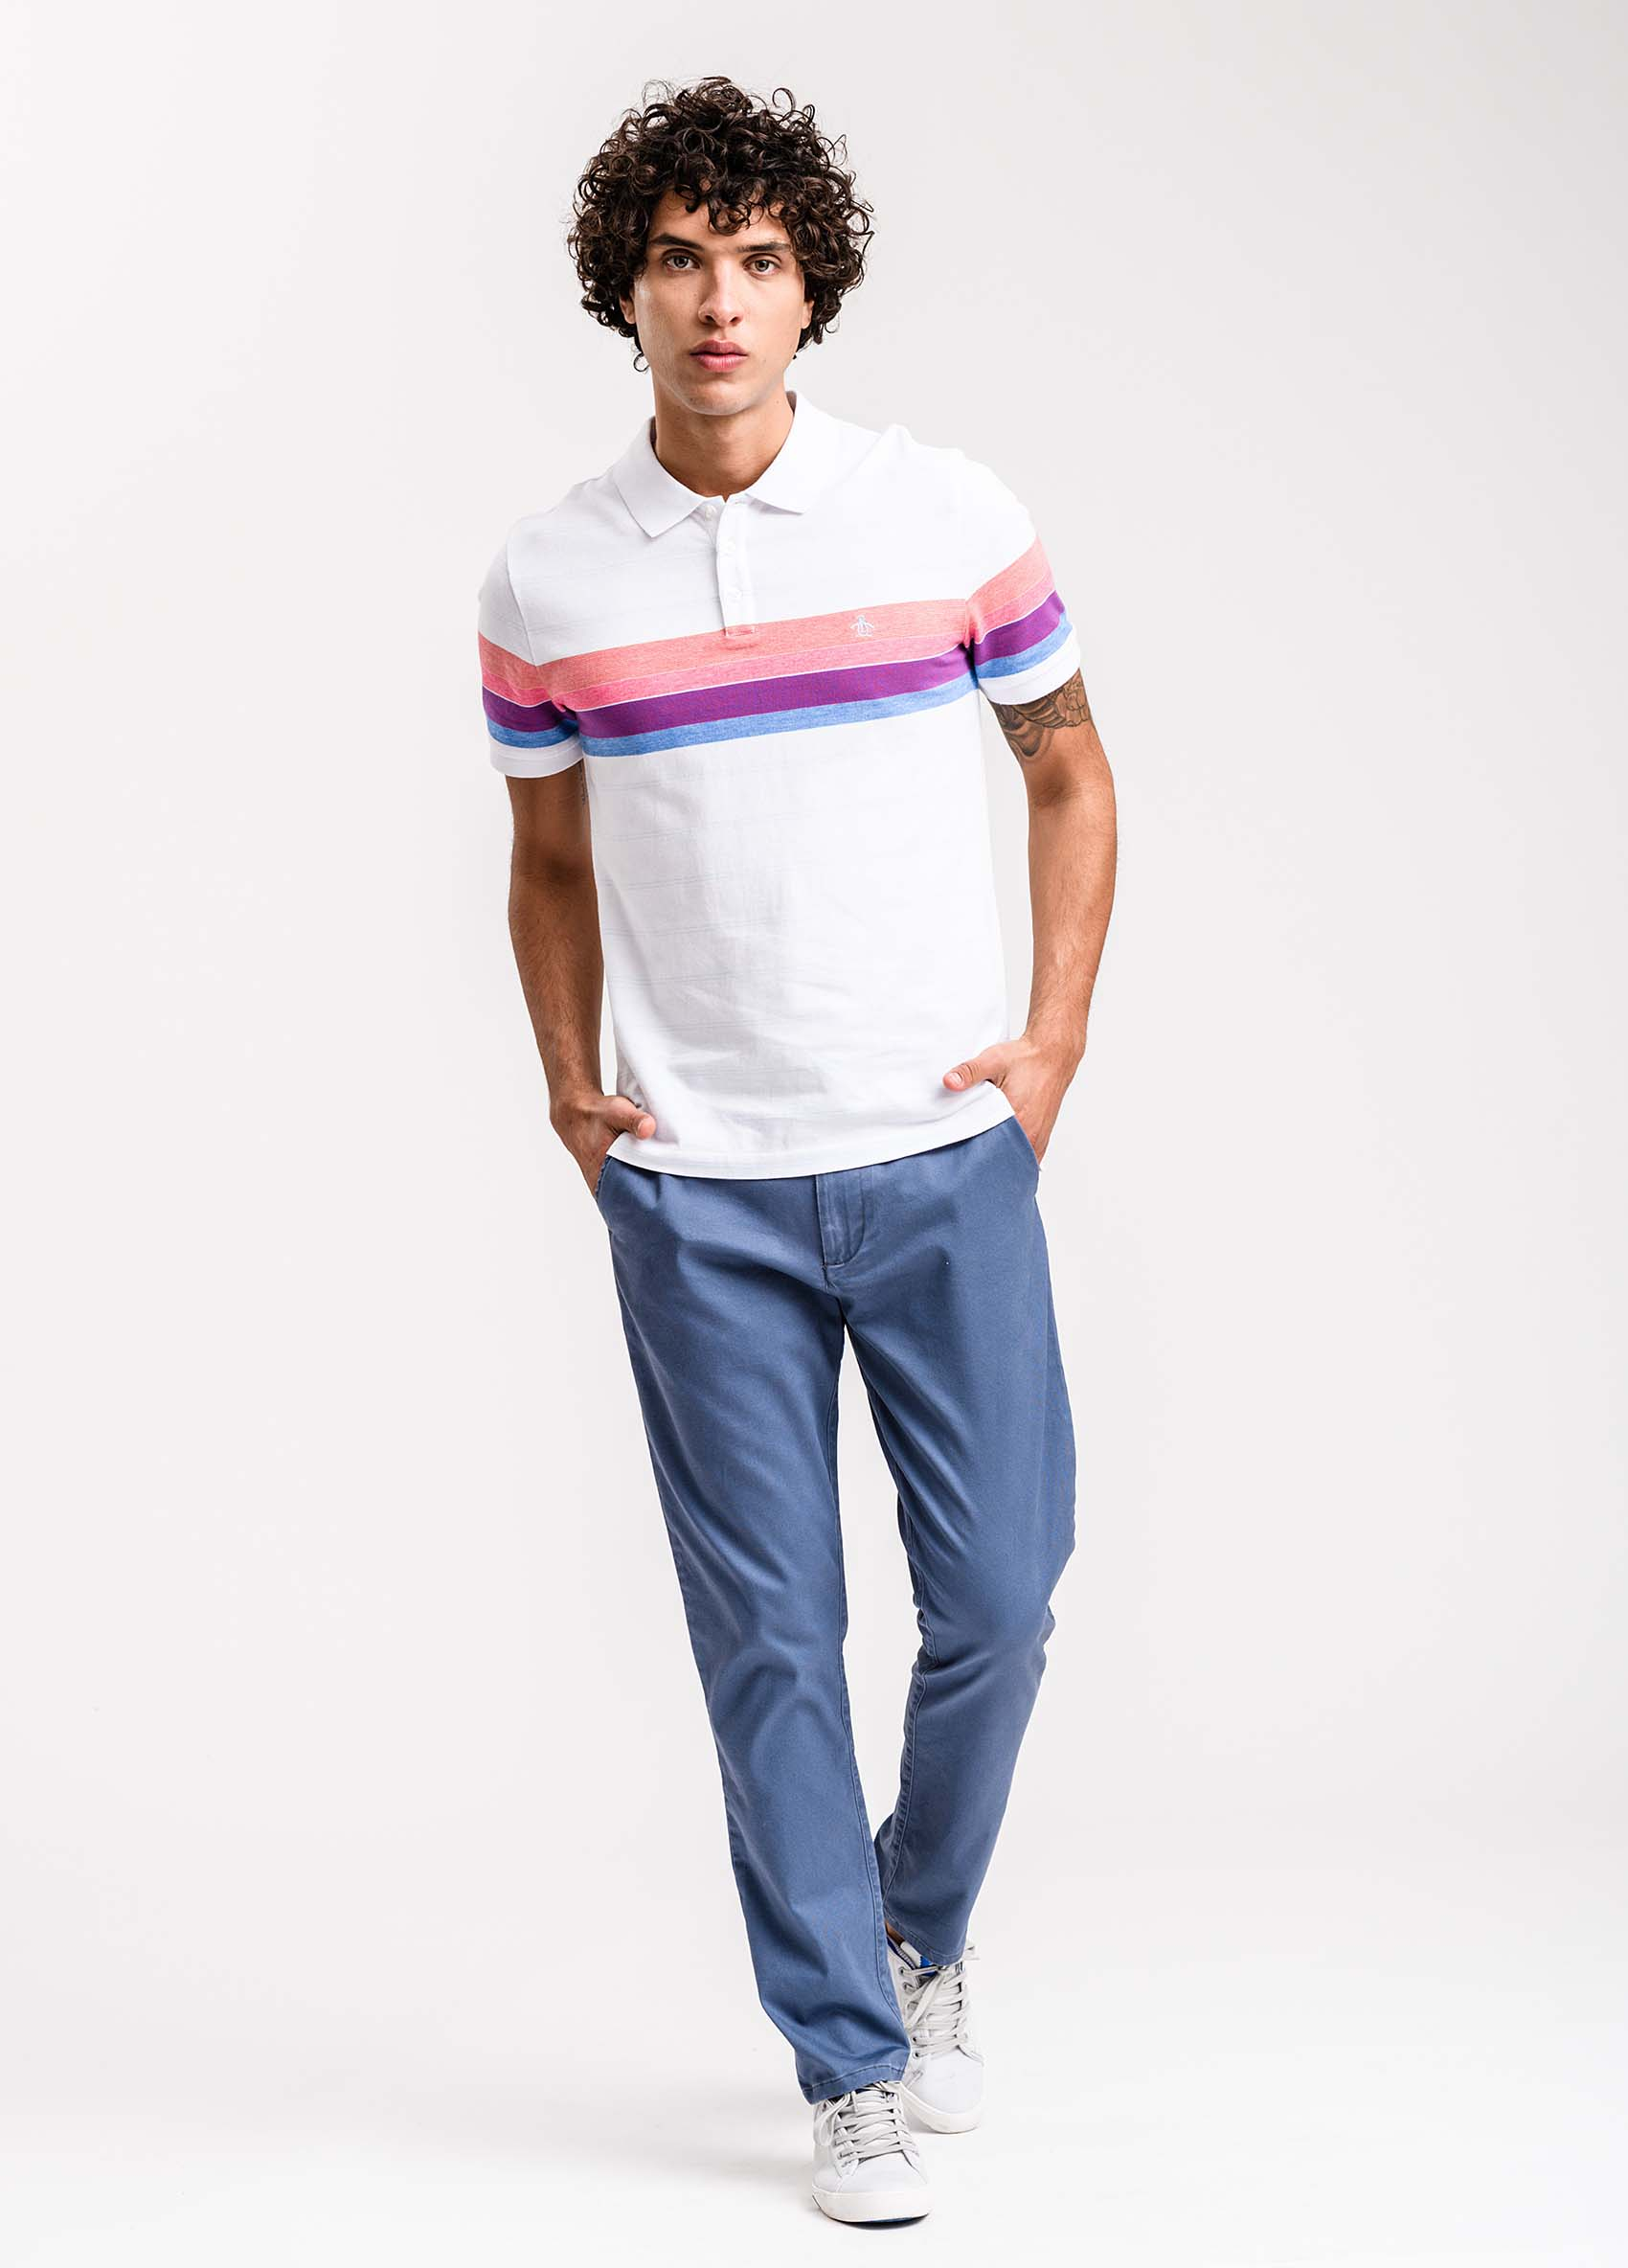 penguin_ss-engineered-rainbow-stripe-polo_03-27-2019__picture-1768